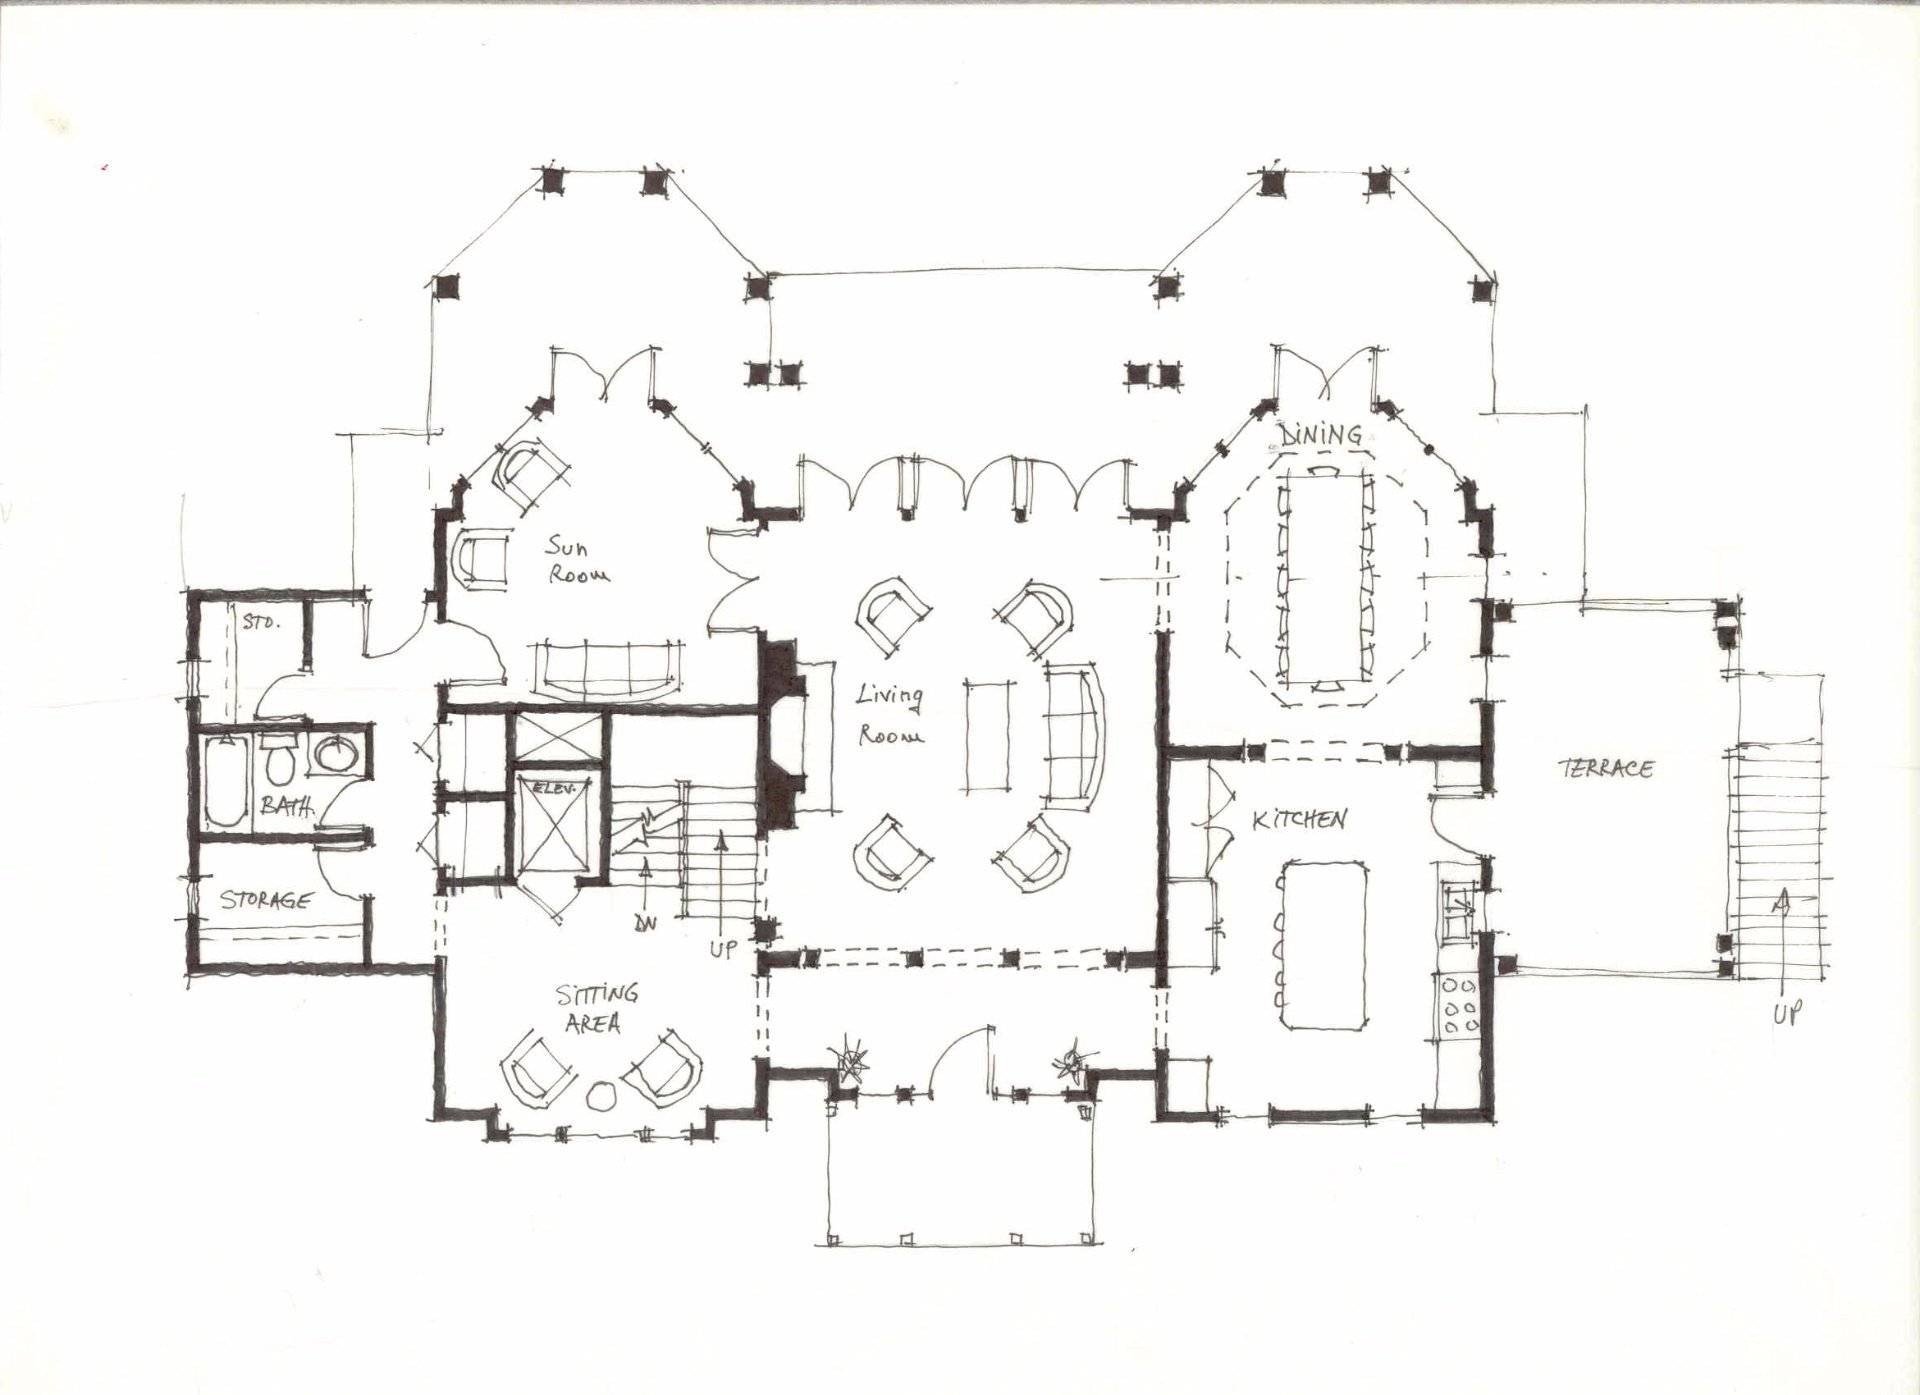 Keystone Designs - Architectural Services - The Architectural Process